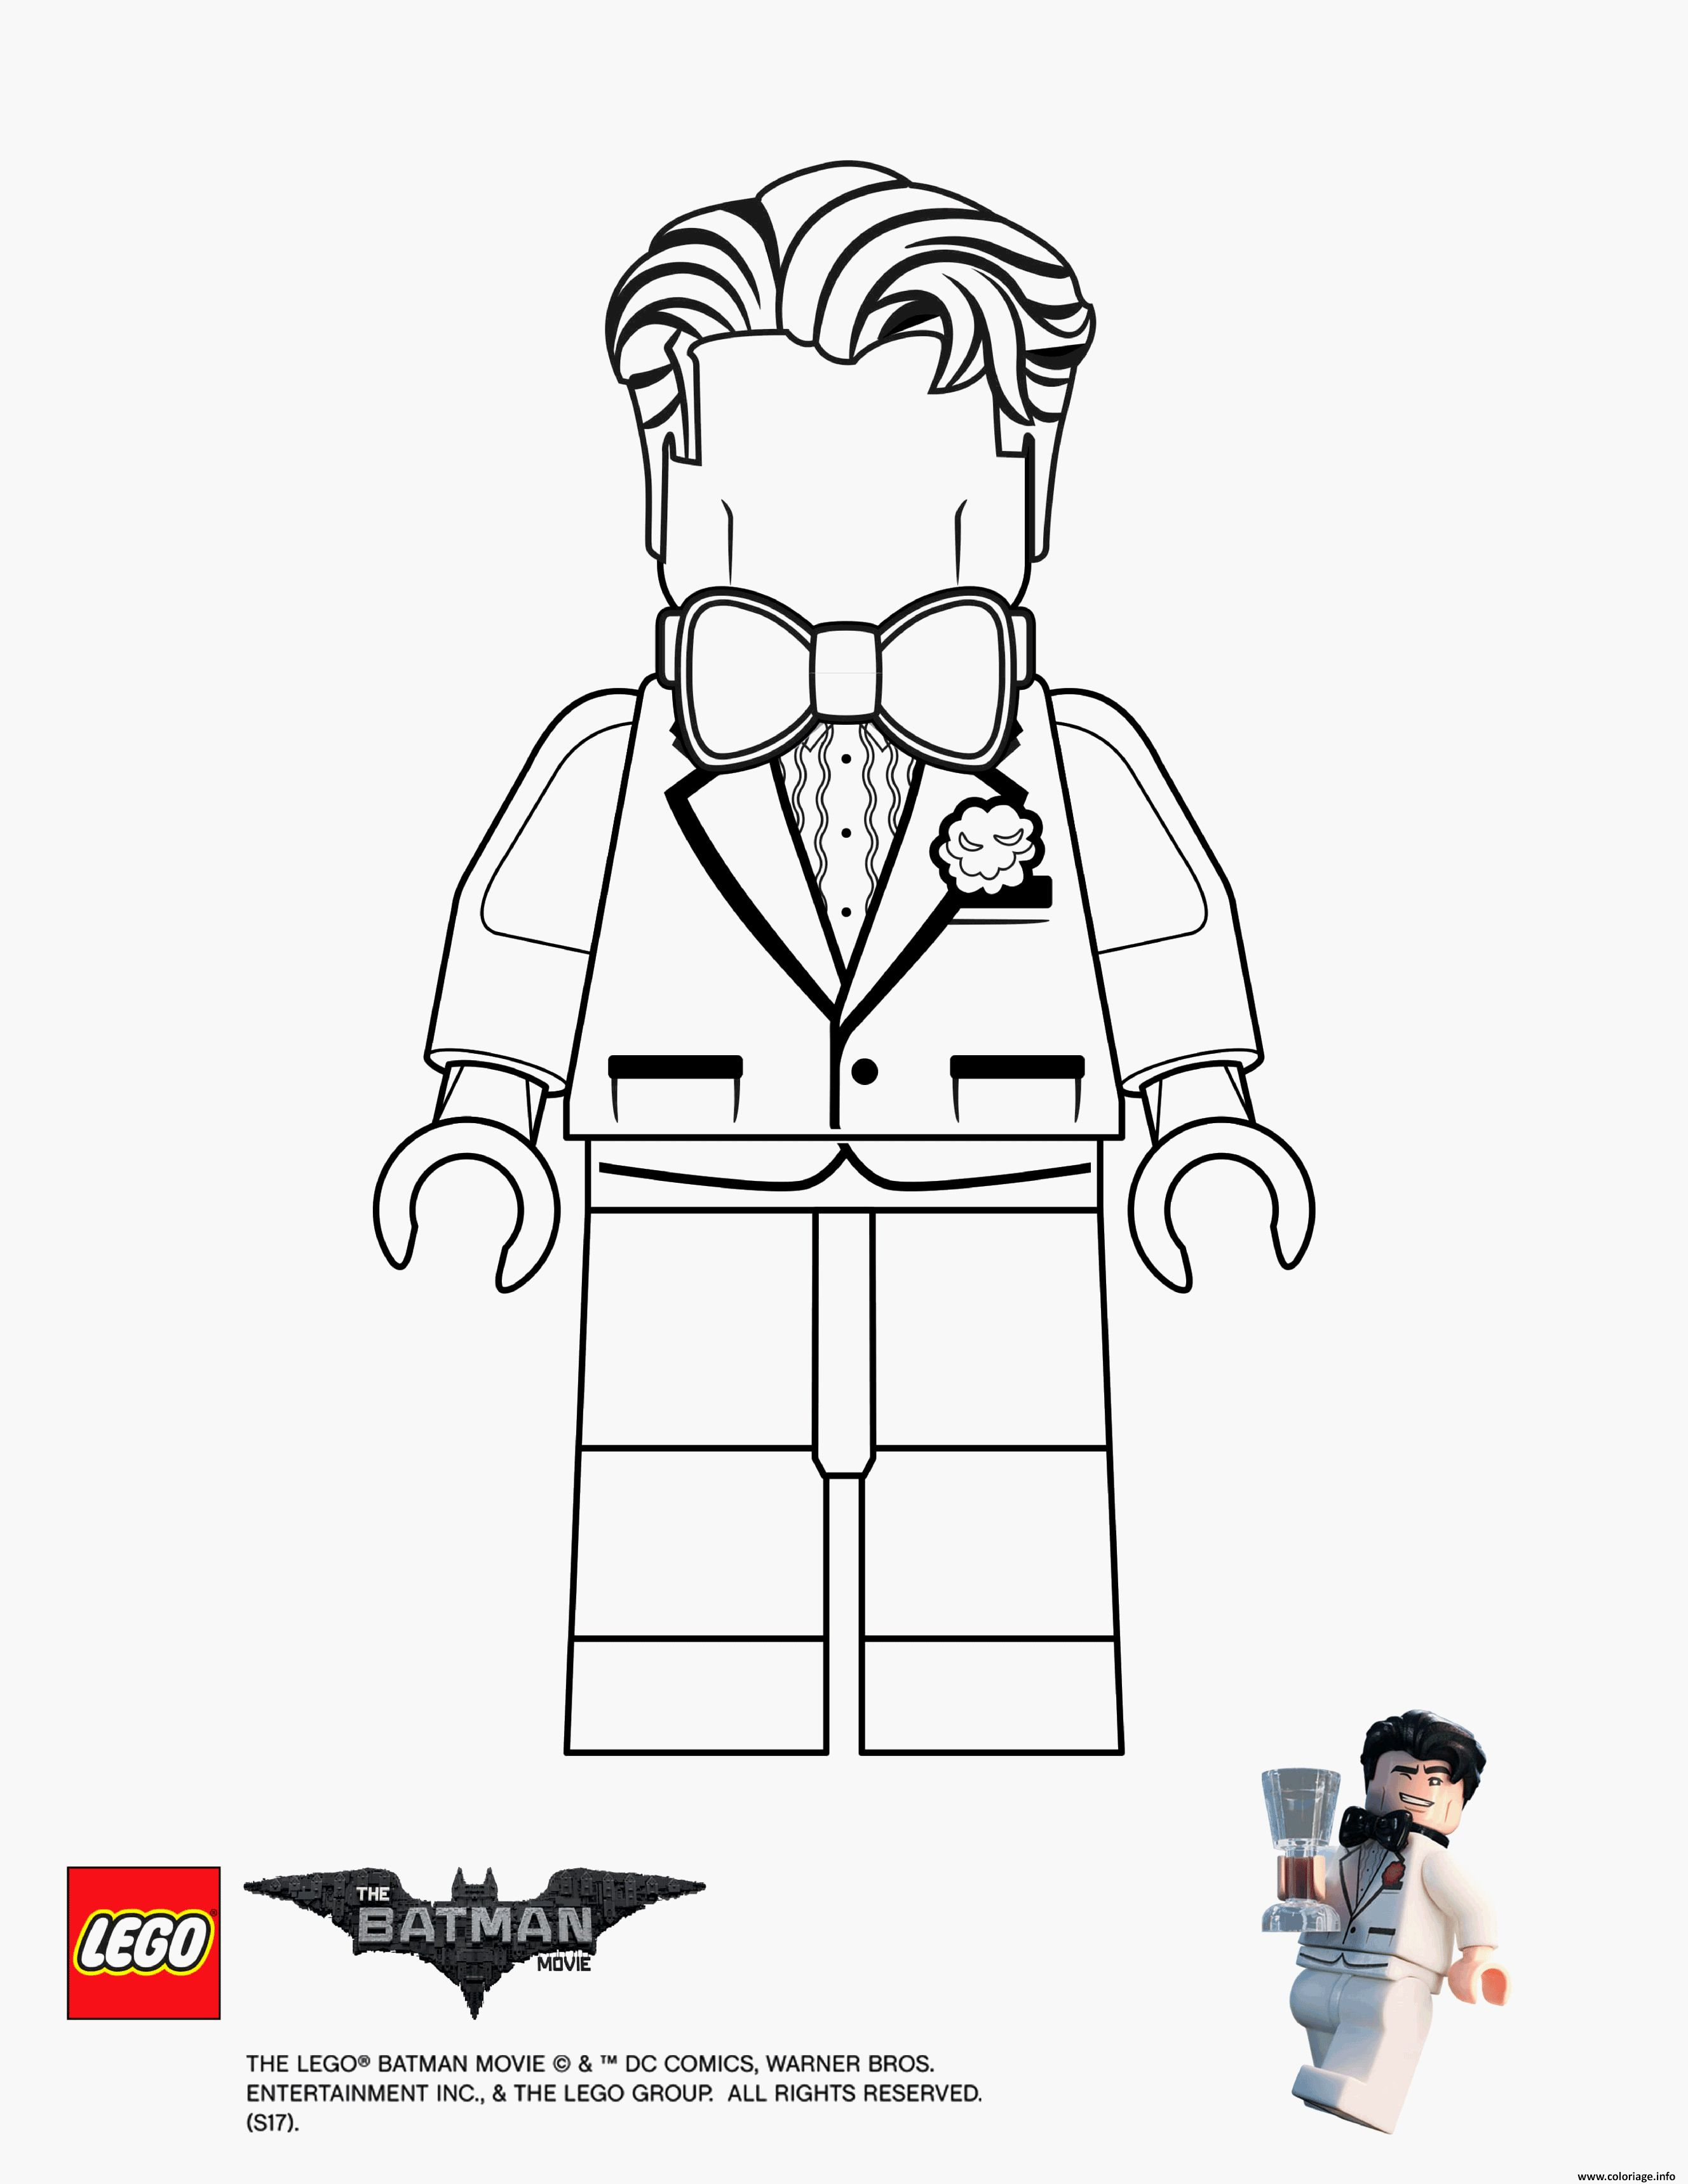 Coloriage Gratuit Batman Lego.Pin By Ketty Corp On Idees De Meubles In 2019 Lego Lego